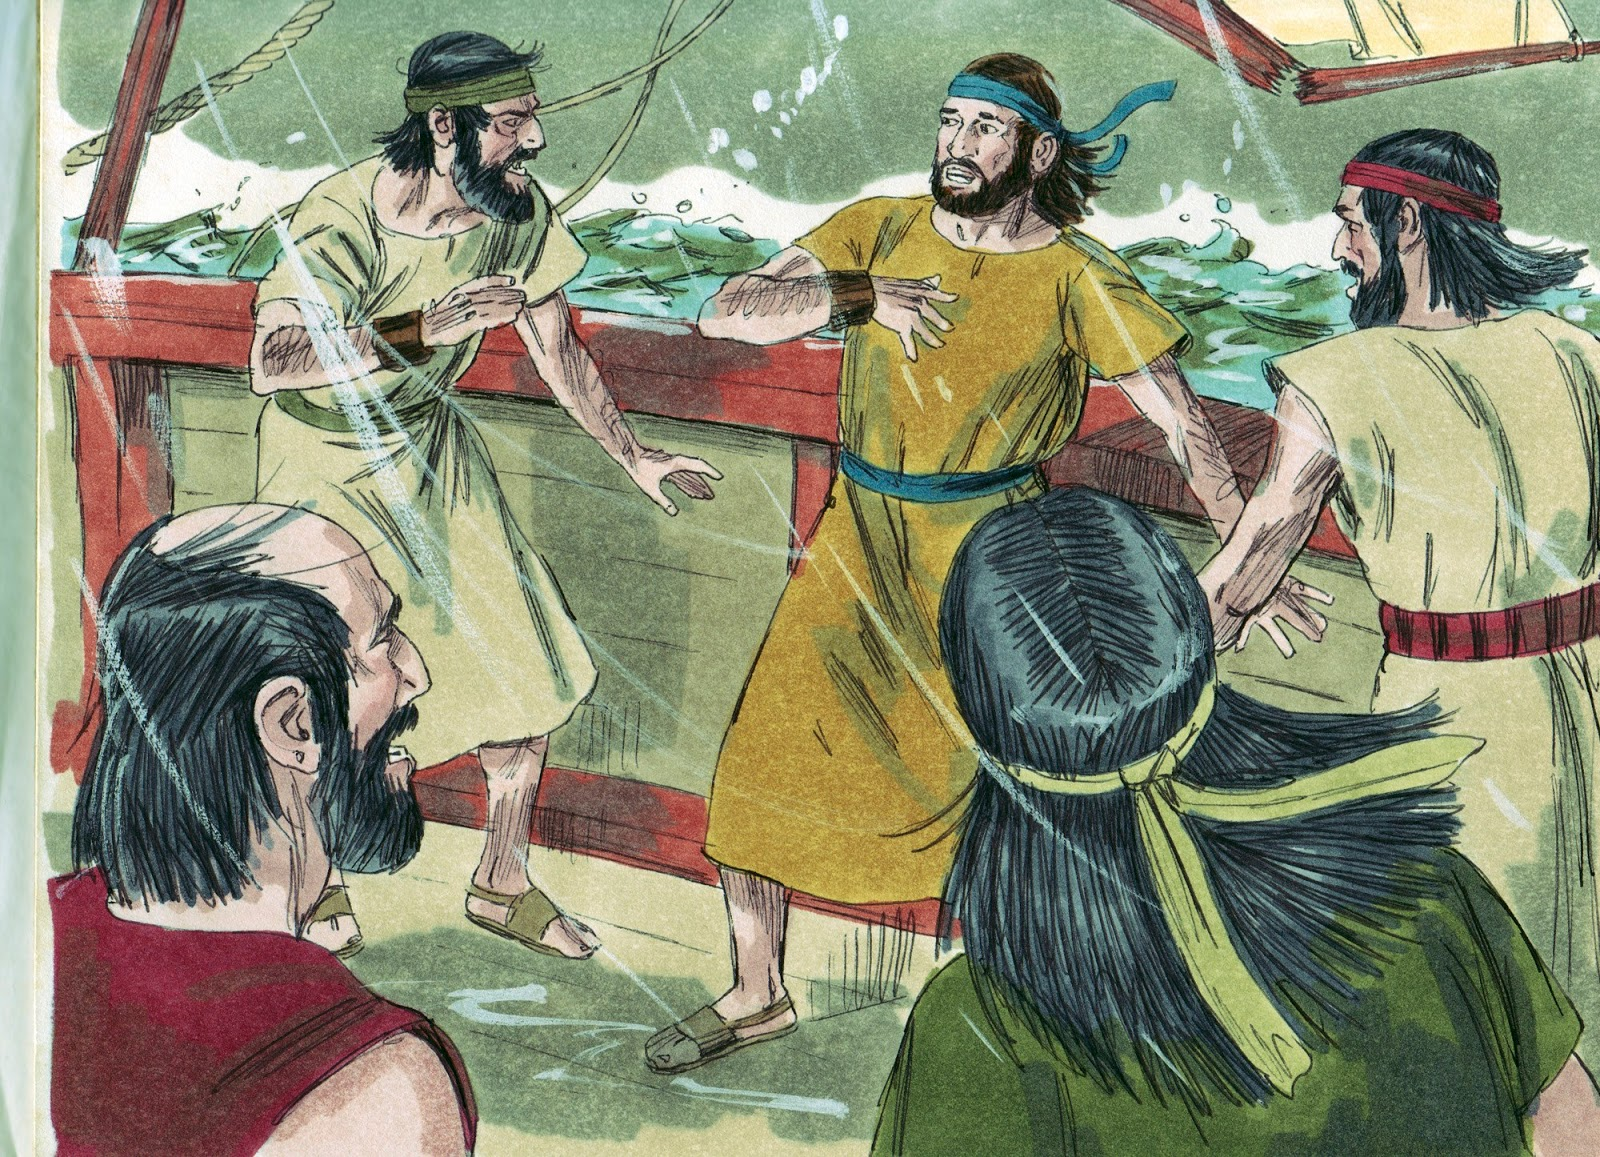 The sailors did not immediately throw Jonah overboard or beating him to death after they found out that he was the cause of the storm.